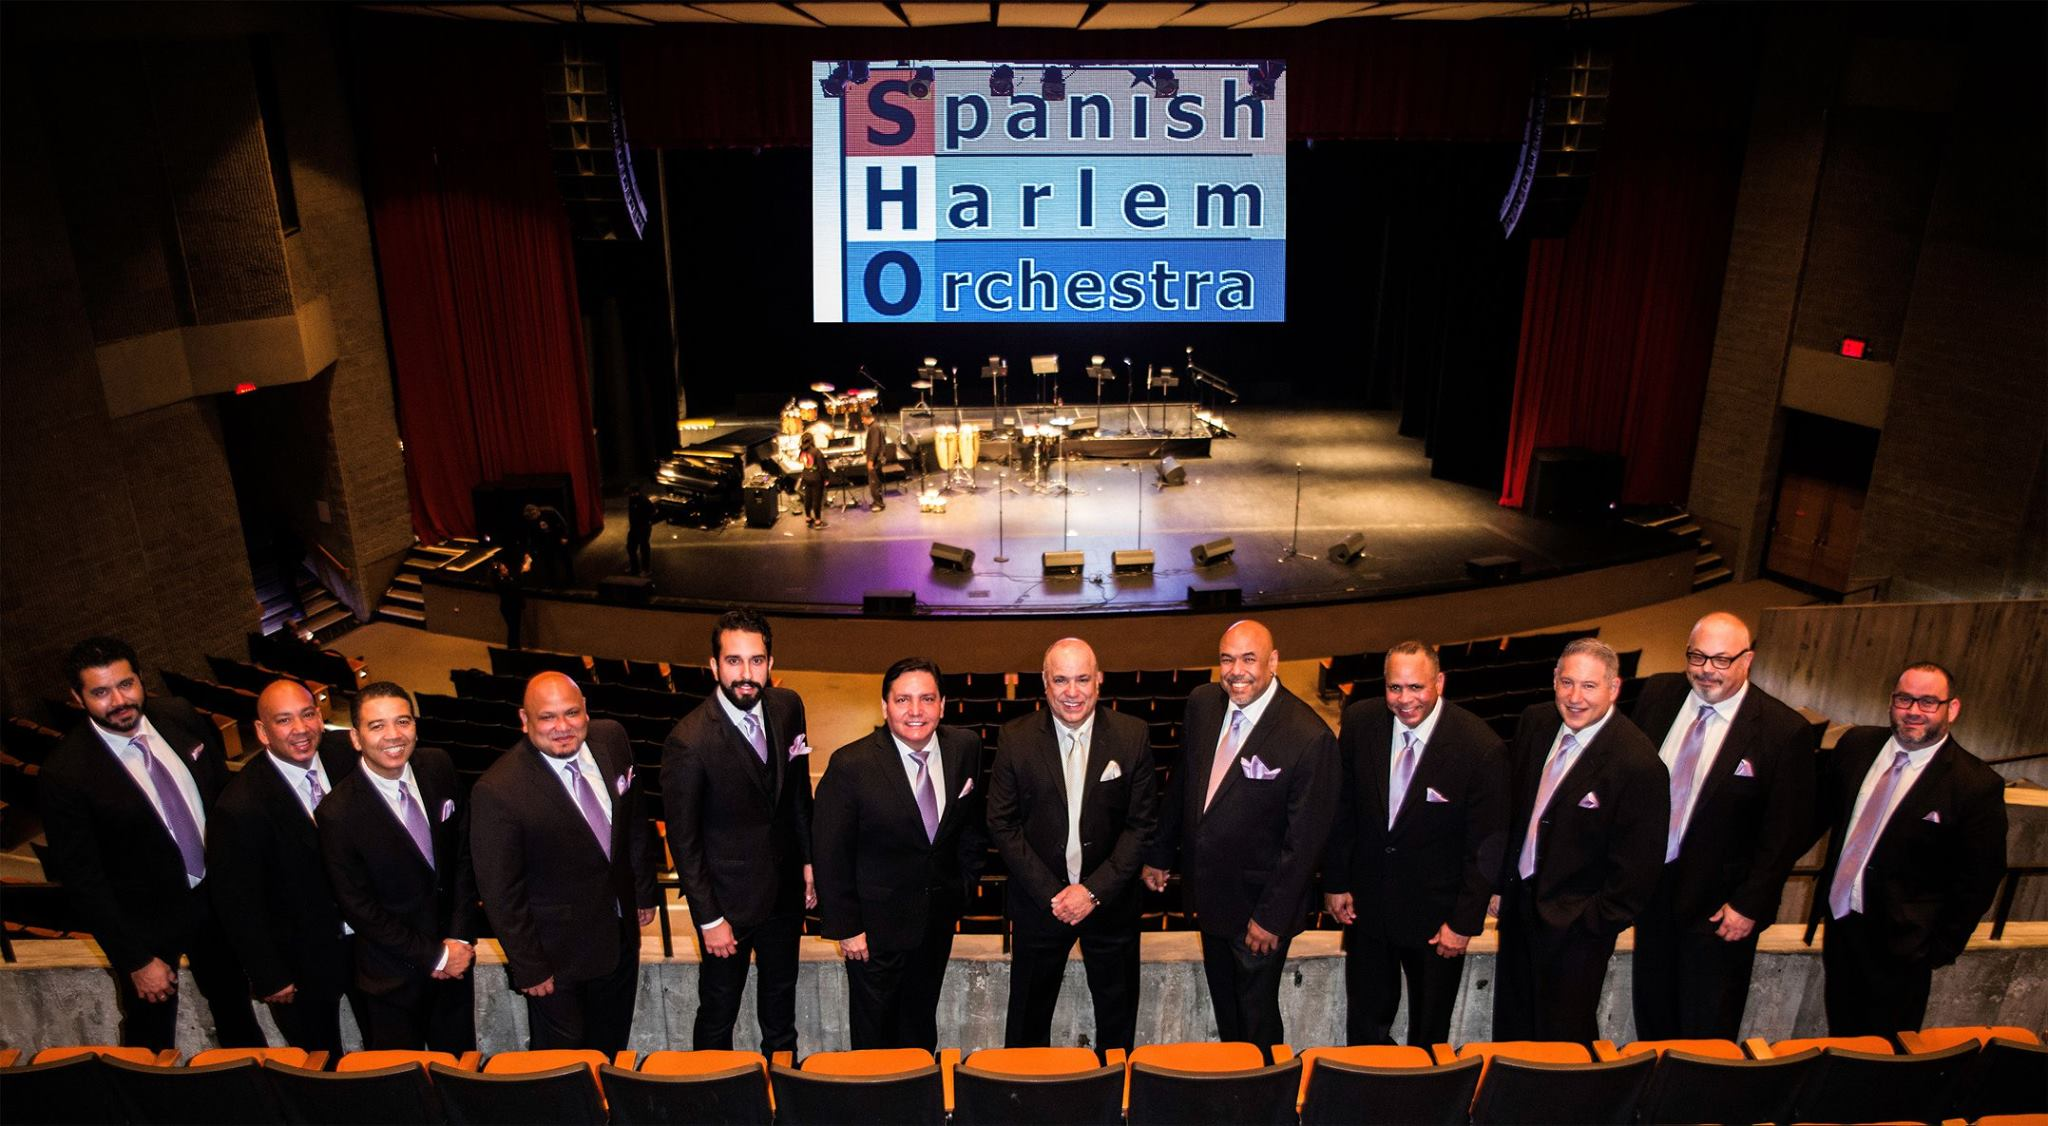 KNKX Features Spanish Harlem Orchestra's Upcoming Seattle Shows